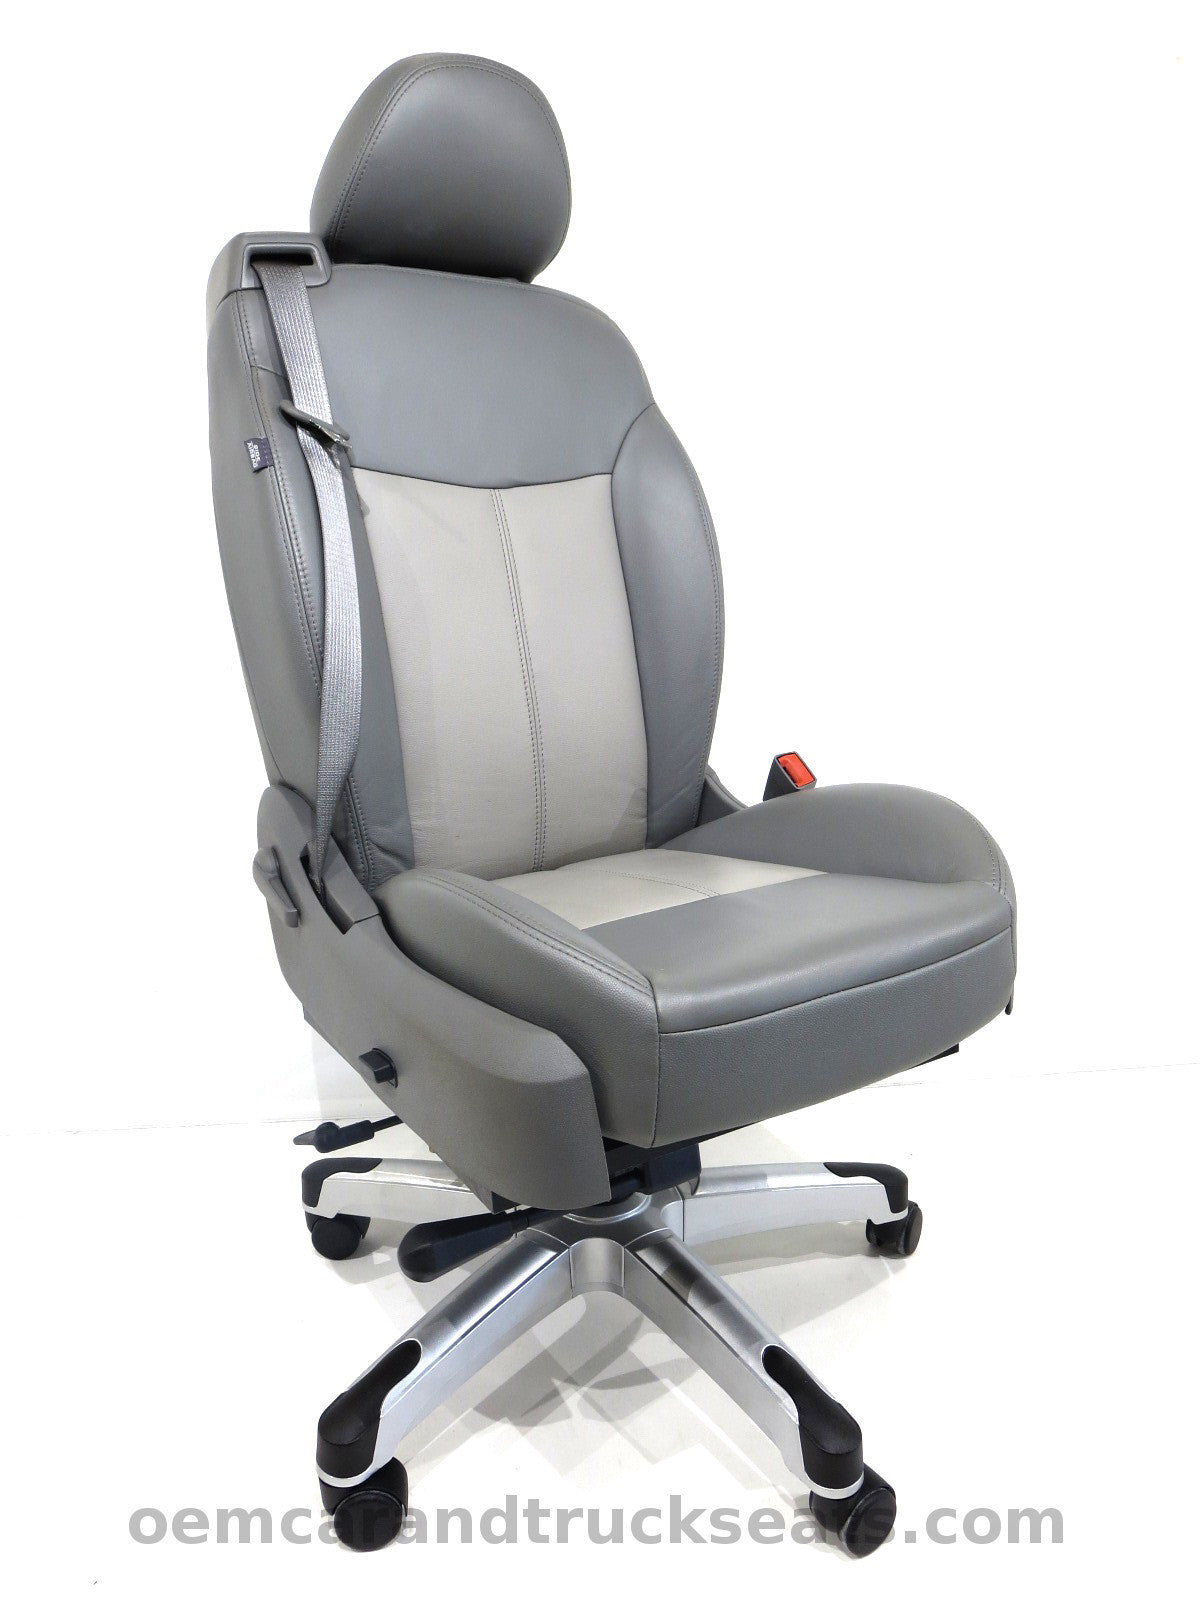 ... Office Chair With Seatbelt: T.O.D. (The Office Drunk) ...